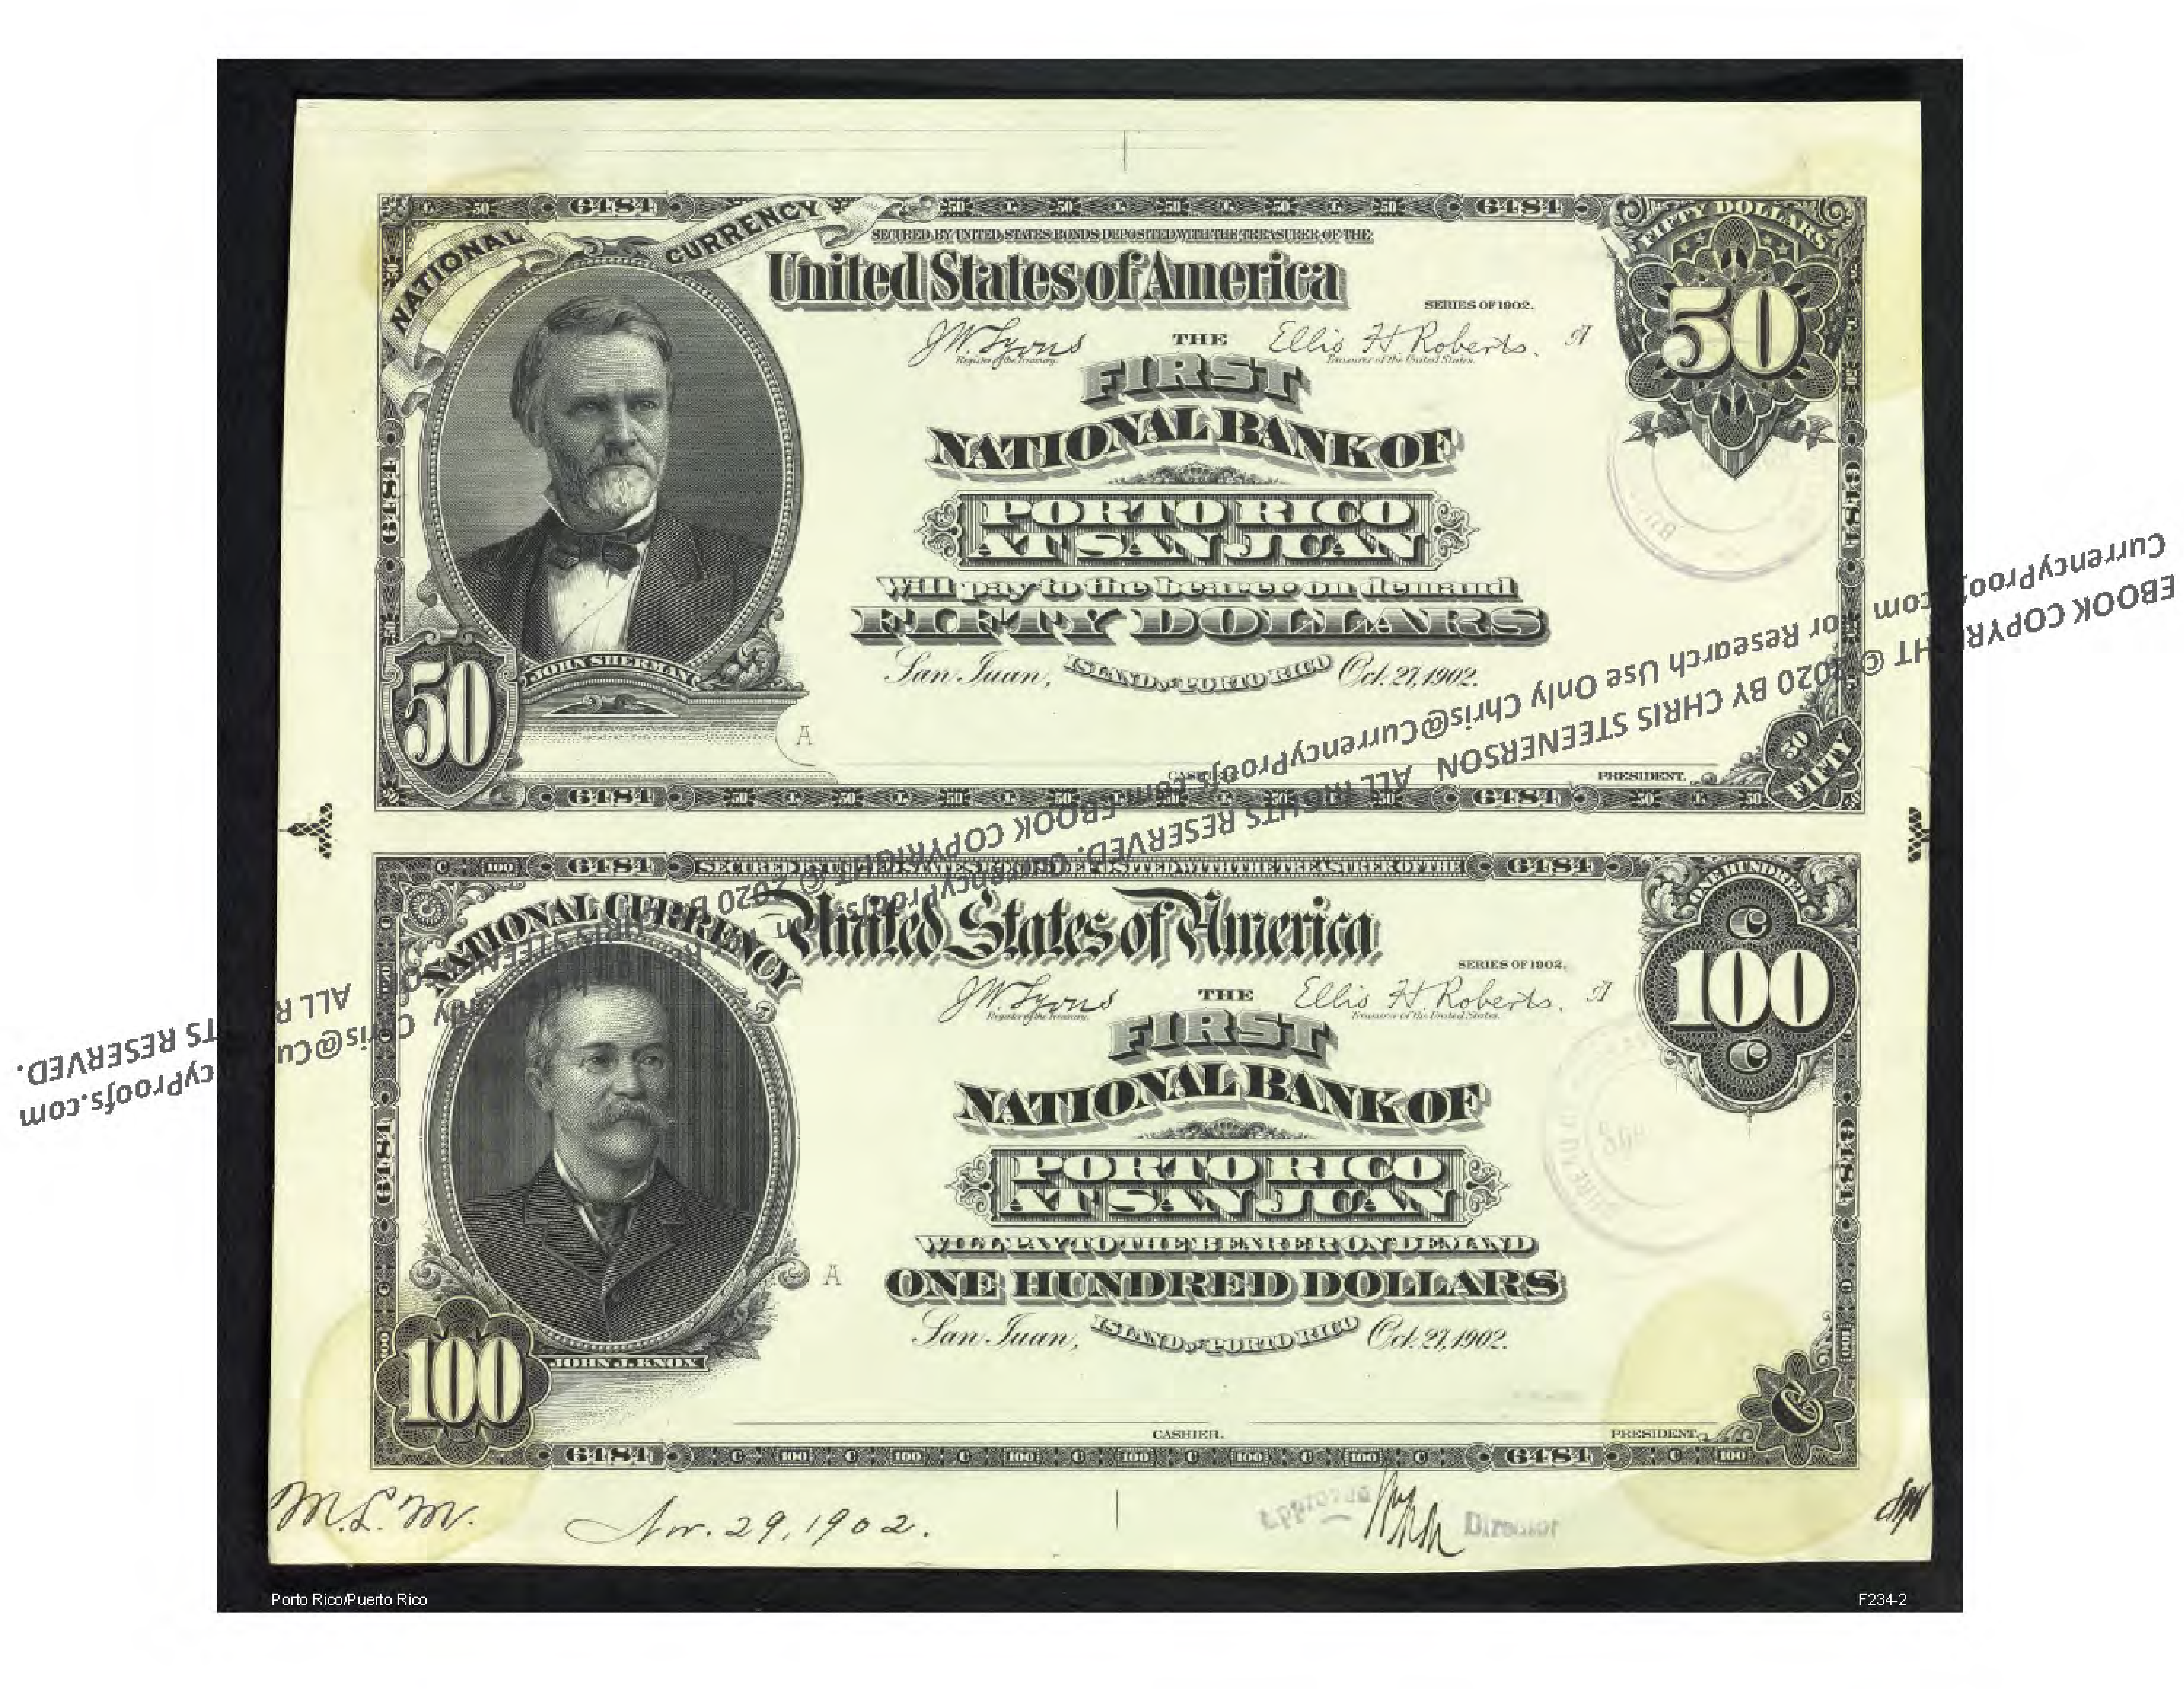 Porto Rico National Bank Note Currency Proofs